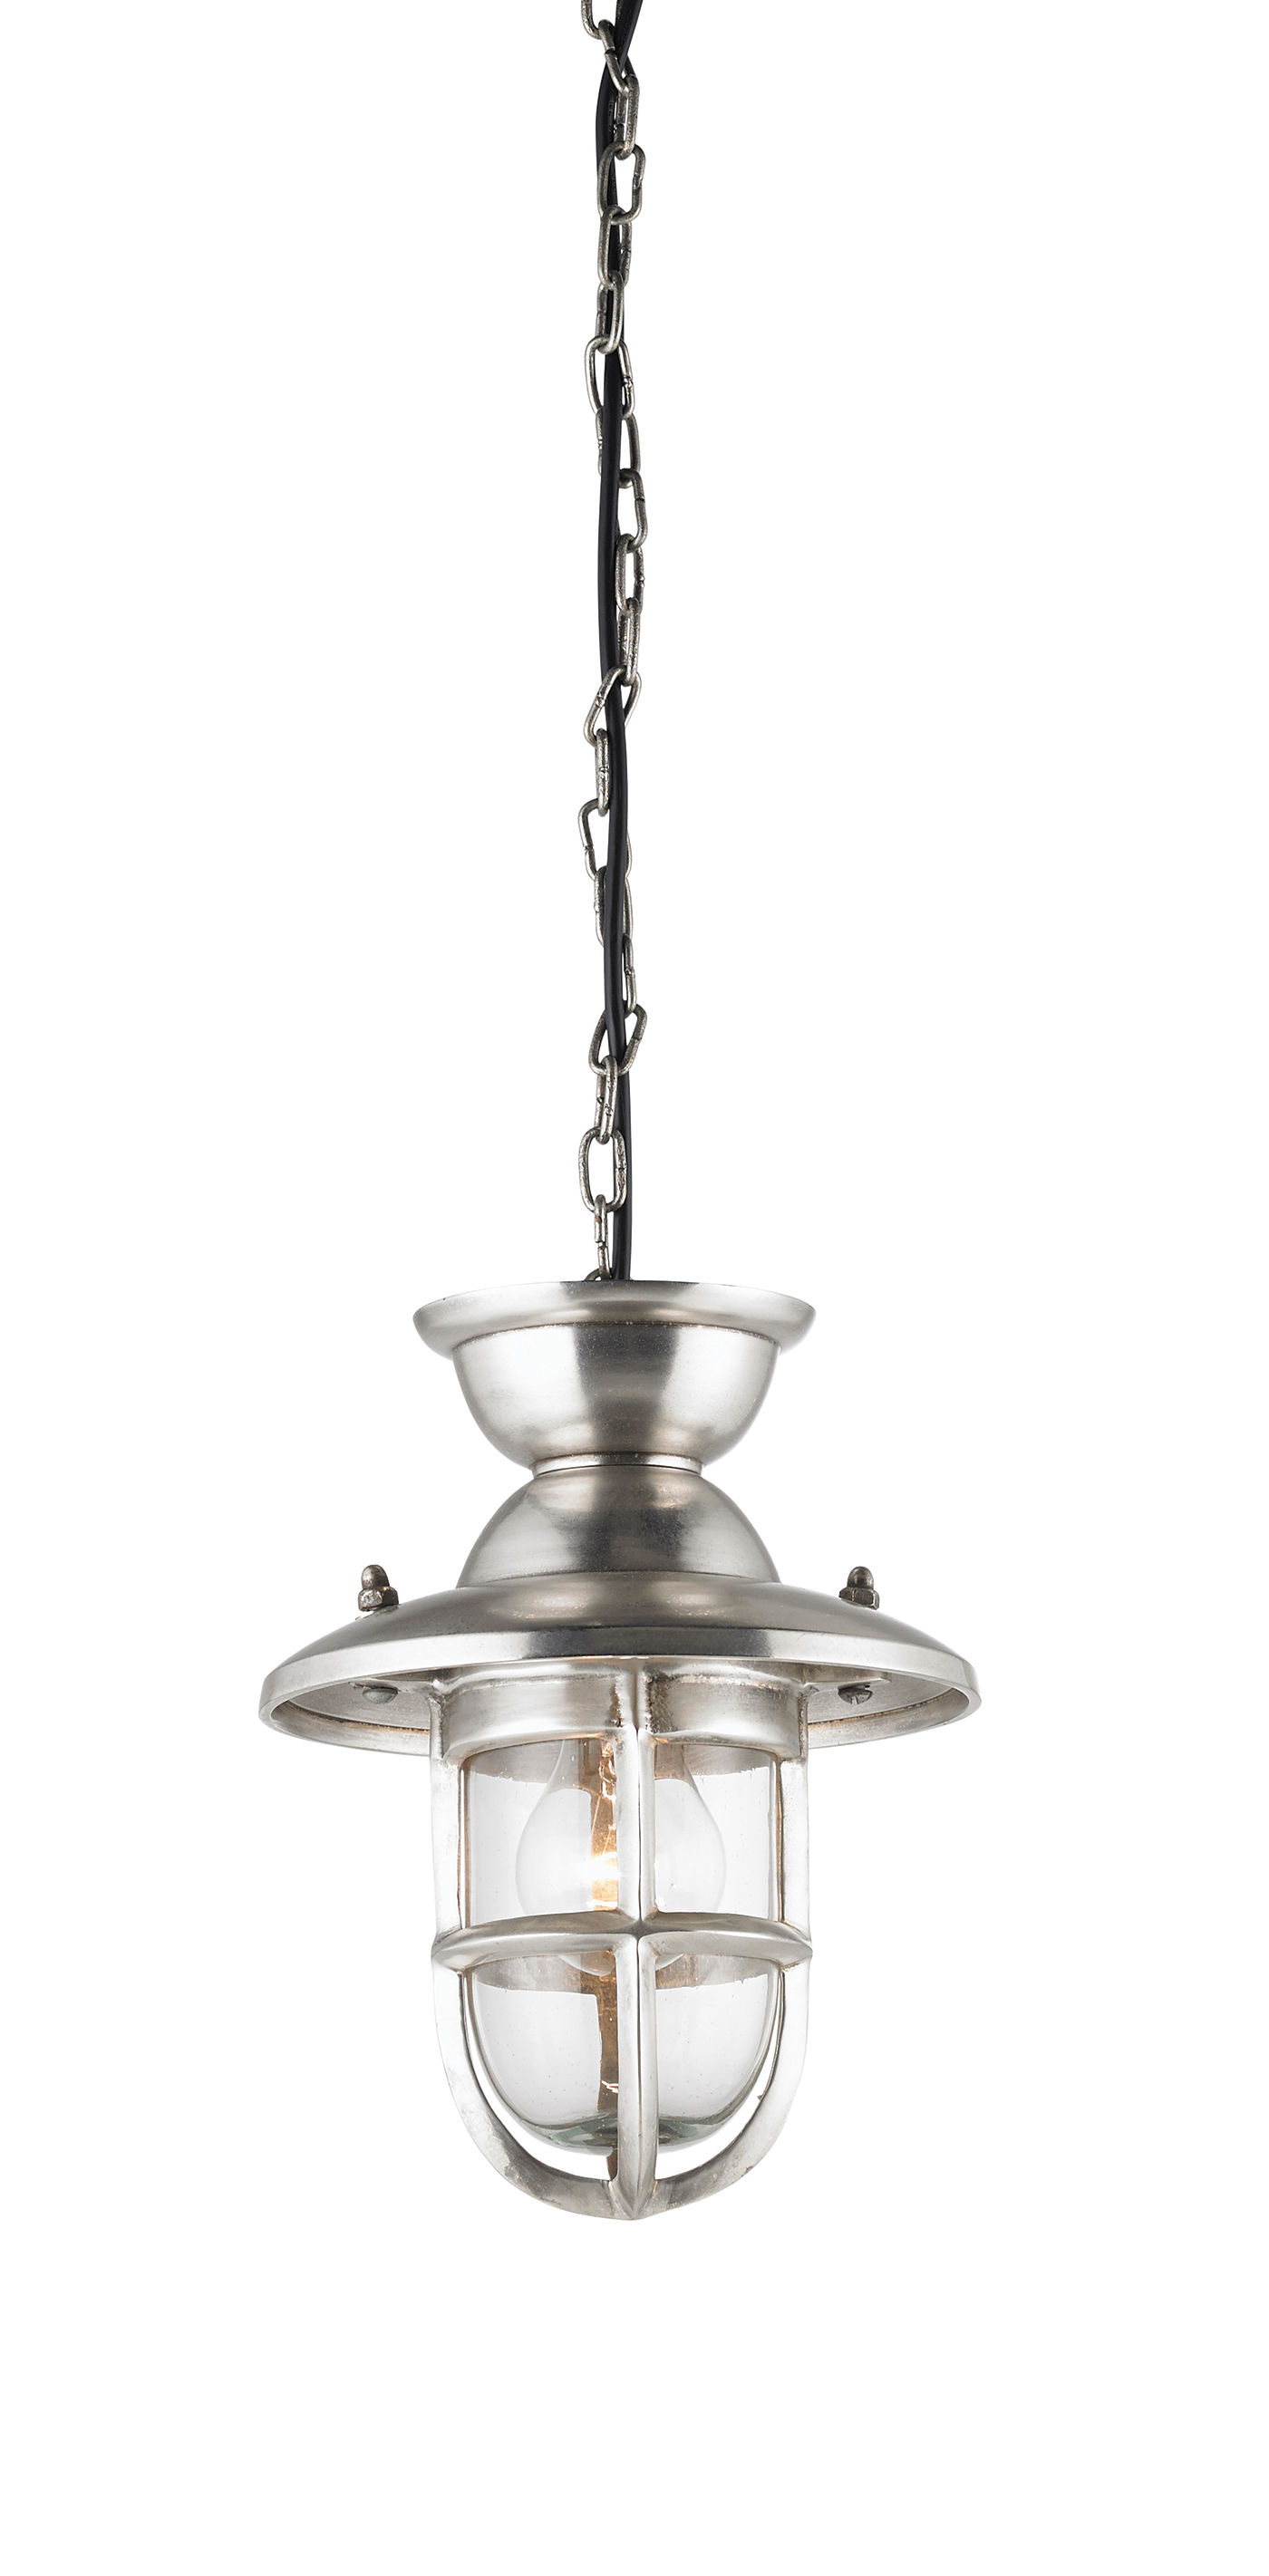 Endon Rowling 205mm pendant 40W Tarnished silver effect